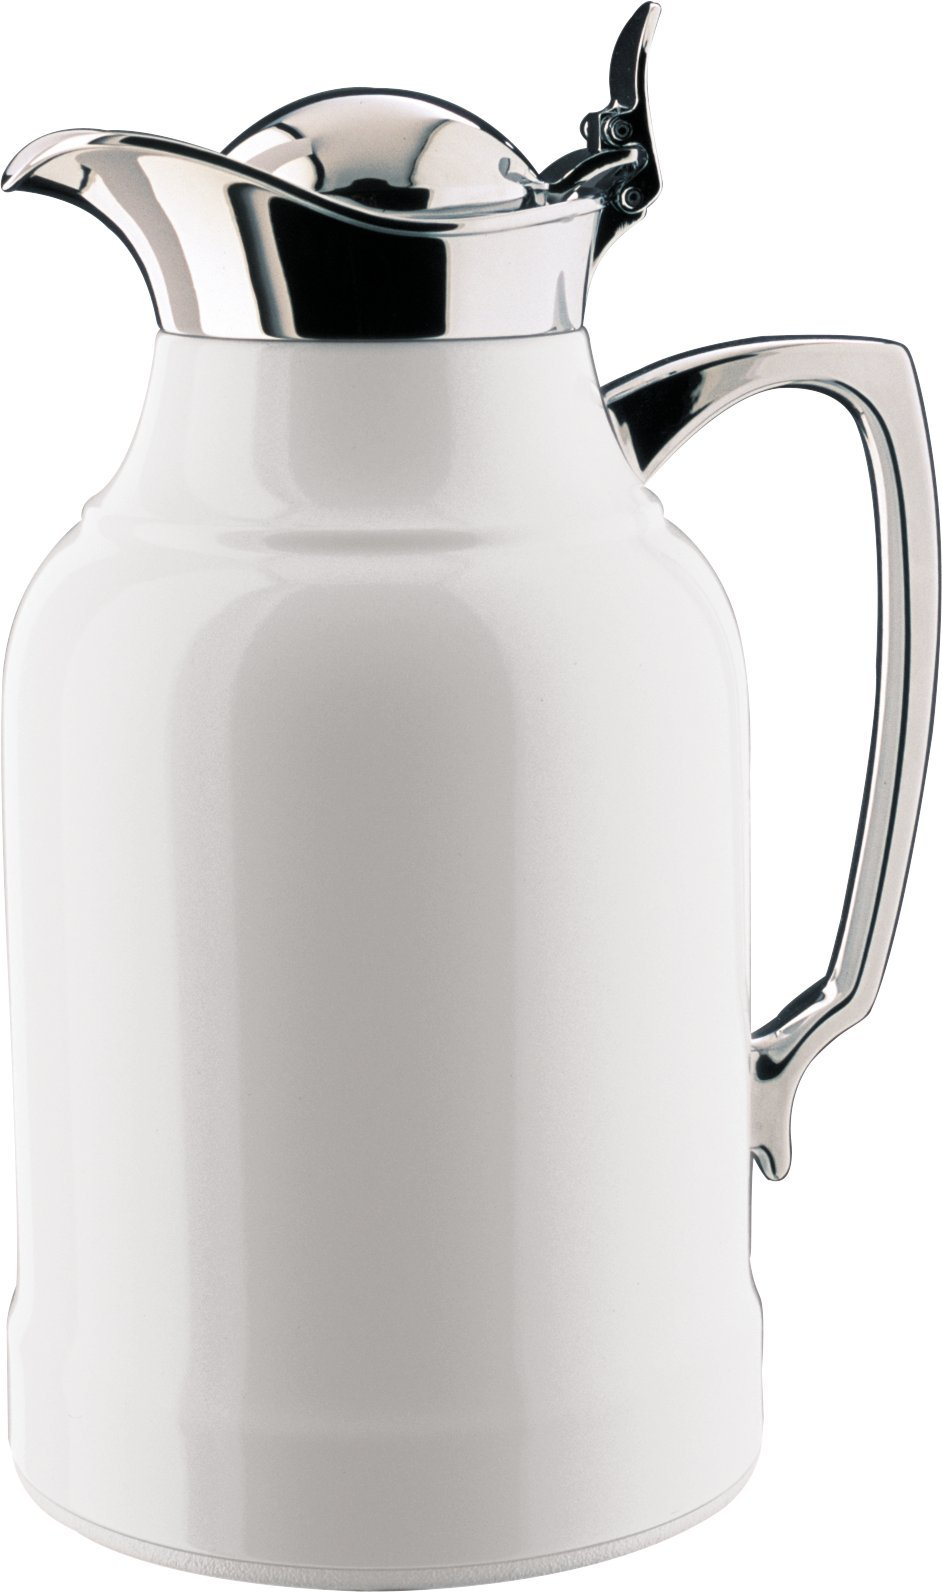 alfi Opal Glass Vacuum Lacquered Chrome Plated Brass Thermal Carafe for Hot and Cold Beverages, 1.0 L, White by Alfi